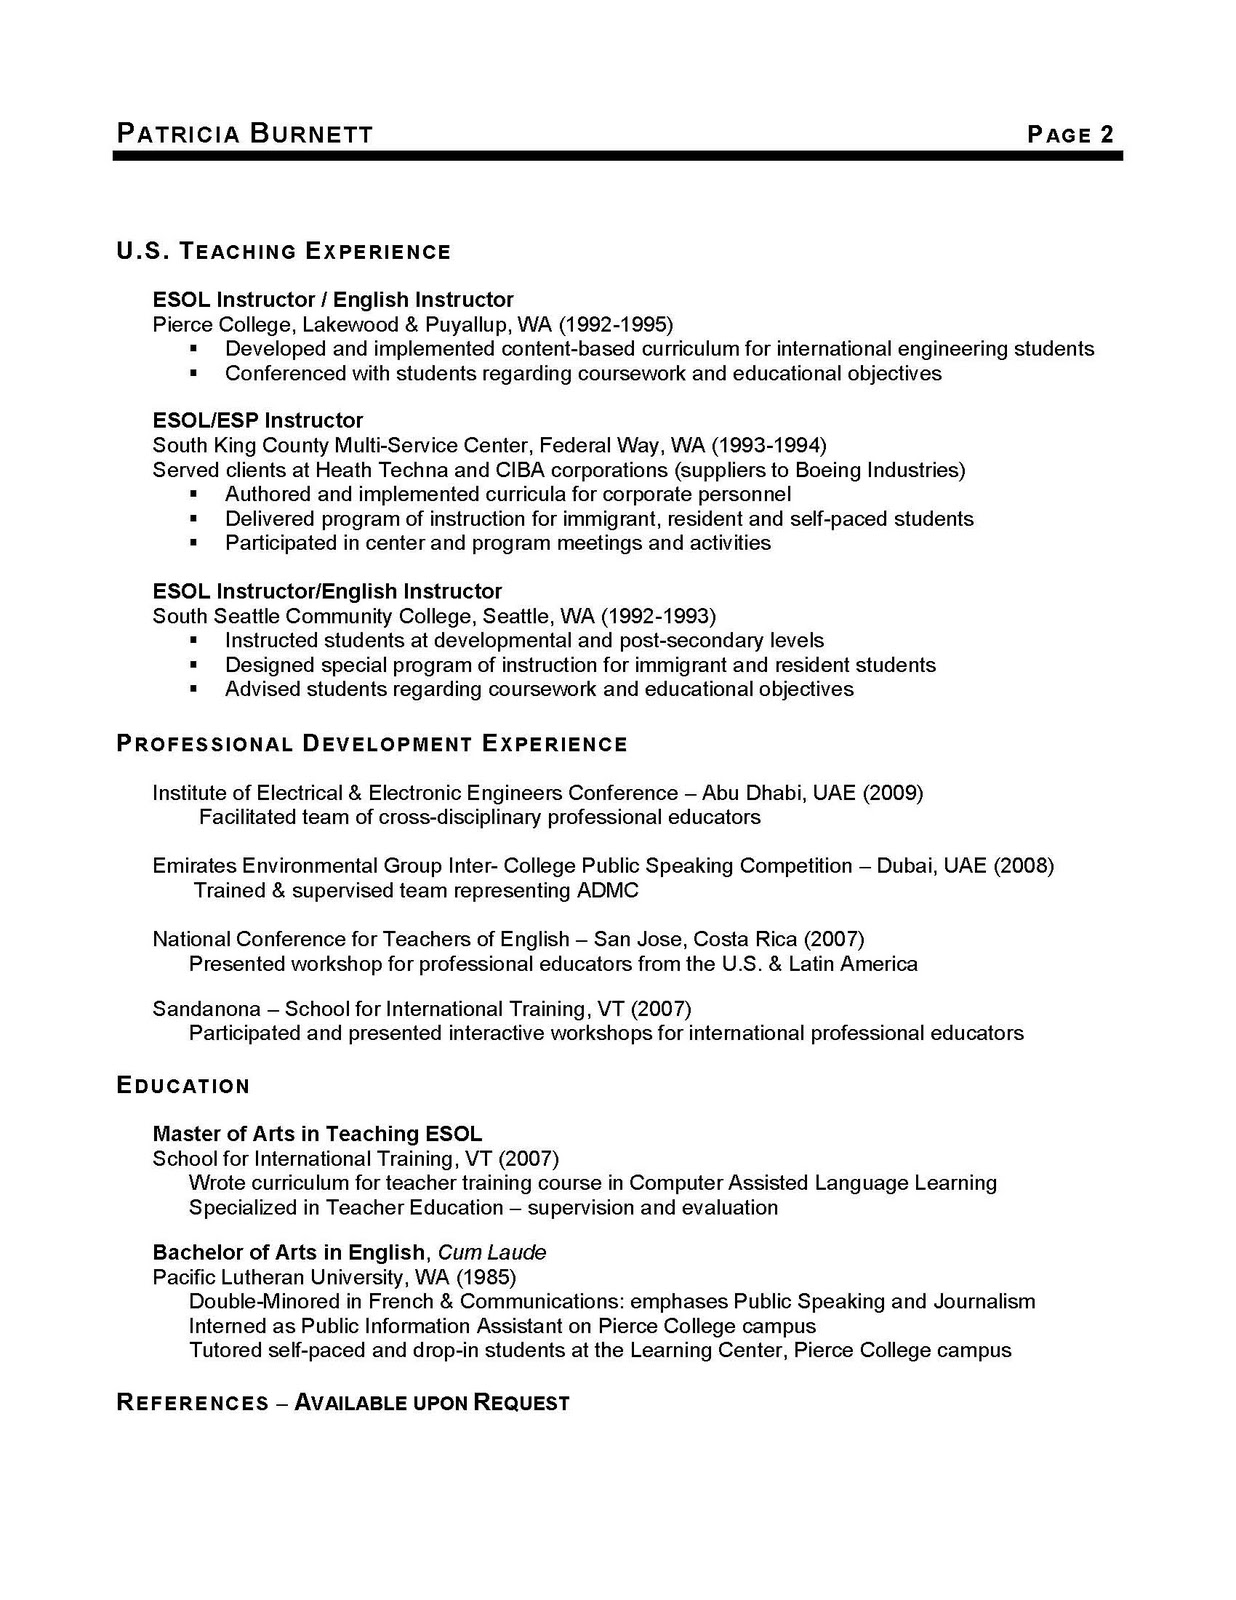 write impressions  u2013 resume writing service virginia beach